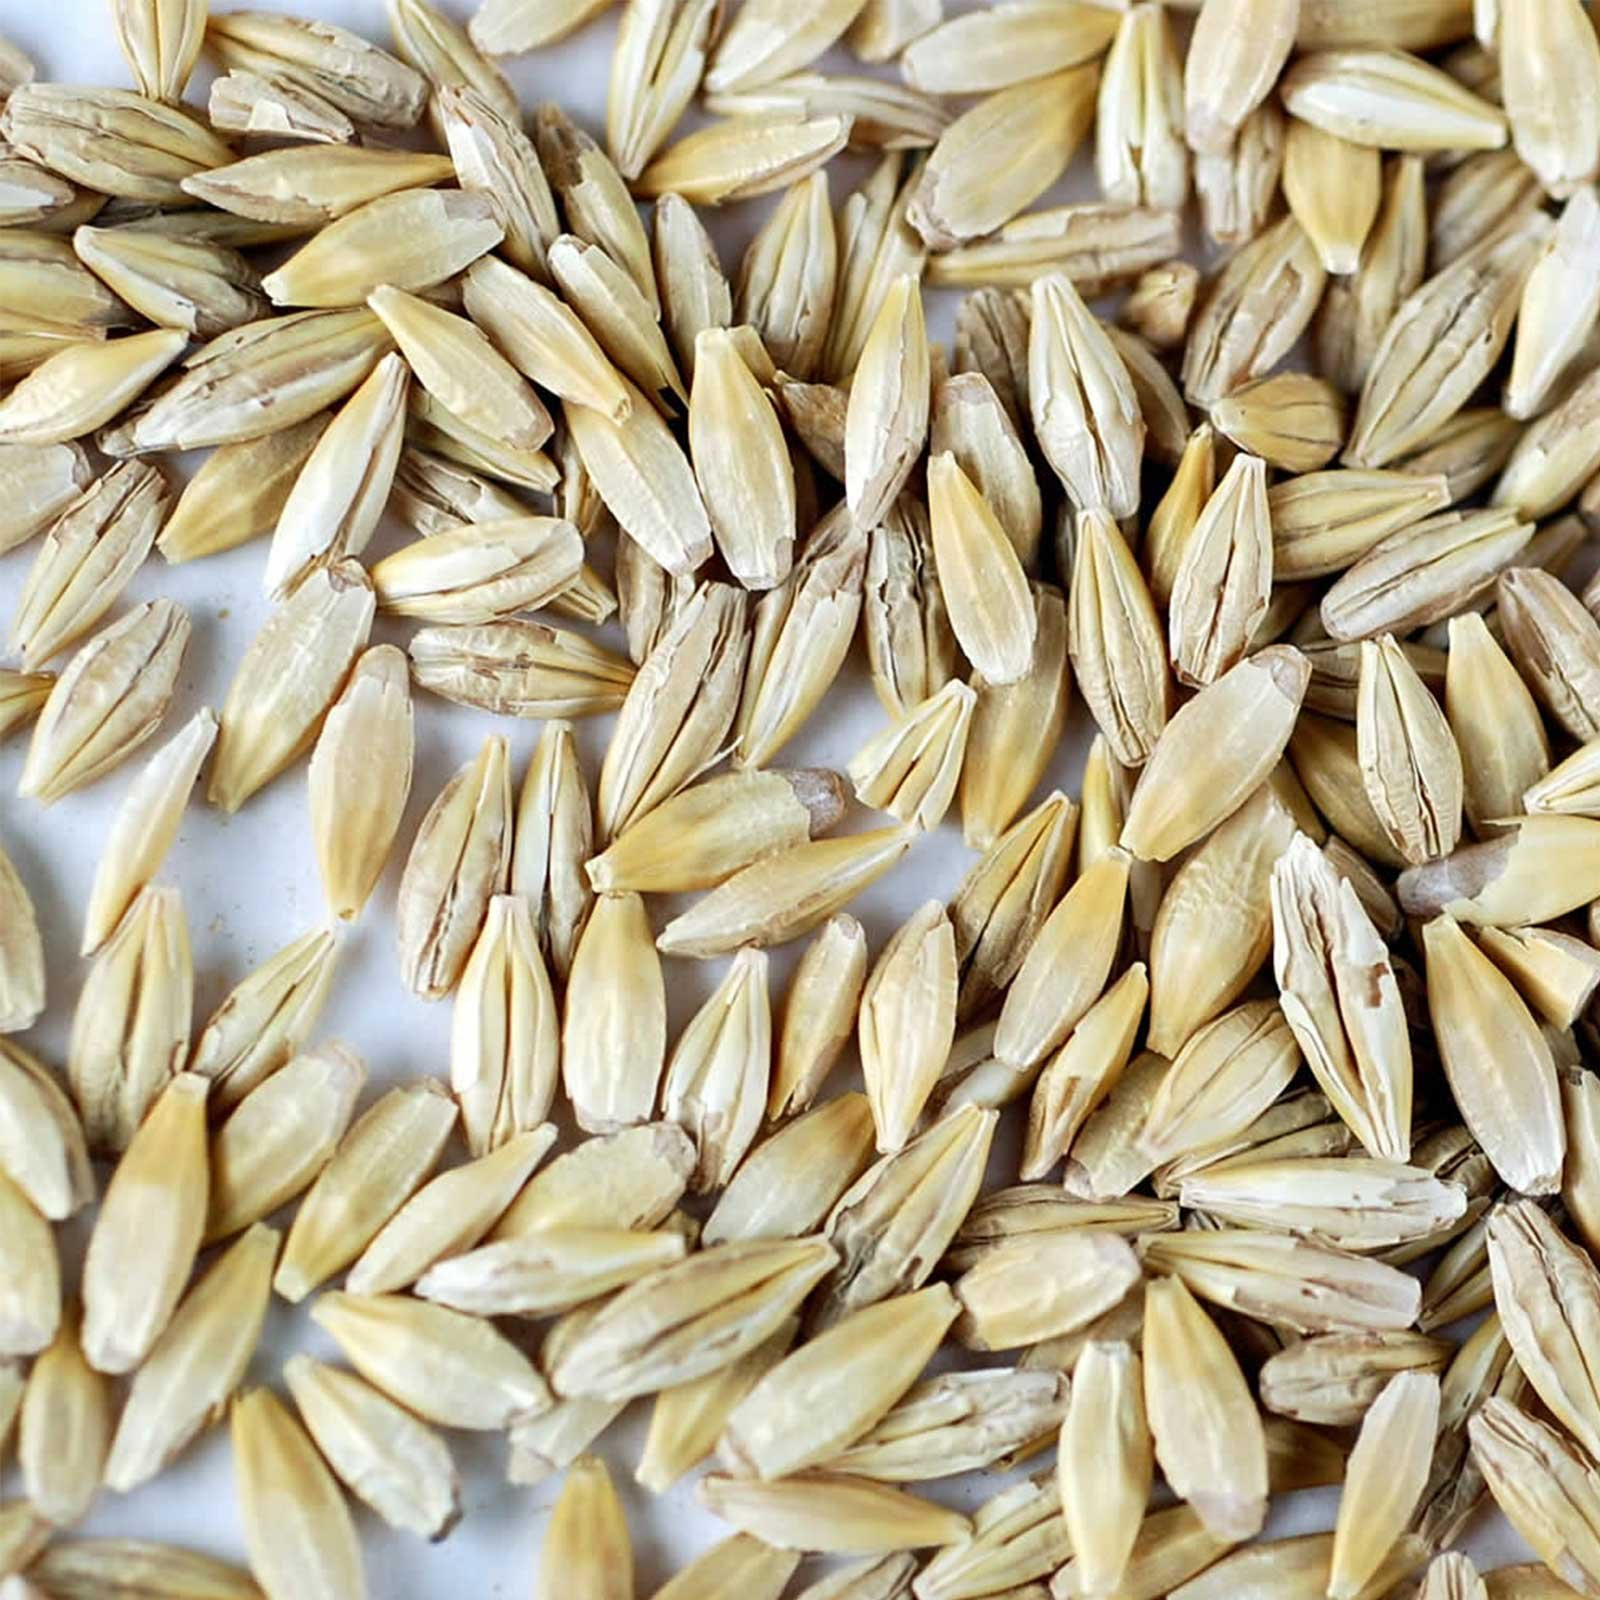 Organic Barley Seeds - 30 Lbs - Whole (Hull Intact) Barleygrass Seed - Ornamental Barley Grass, Juicing - Grain for Beer Making, Emergency Food Storage & More by Handy Pantry (Image #2)